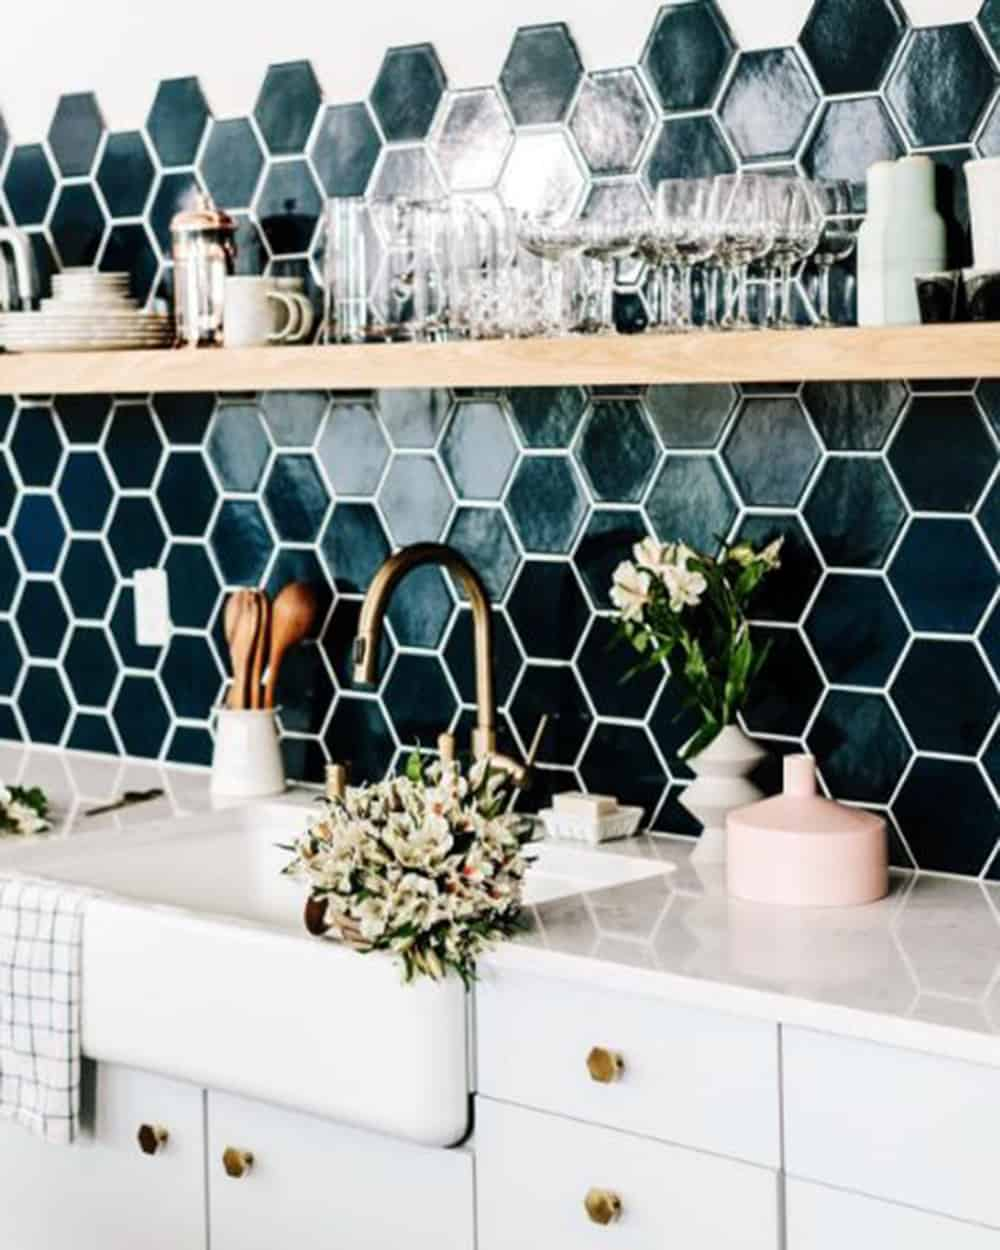 5 Must Have Appliances in Your Kitchen That Will Help You Sell Your Home Fast